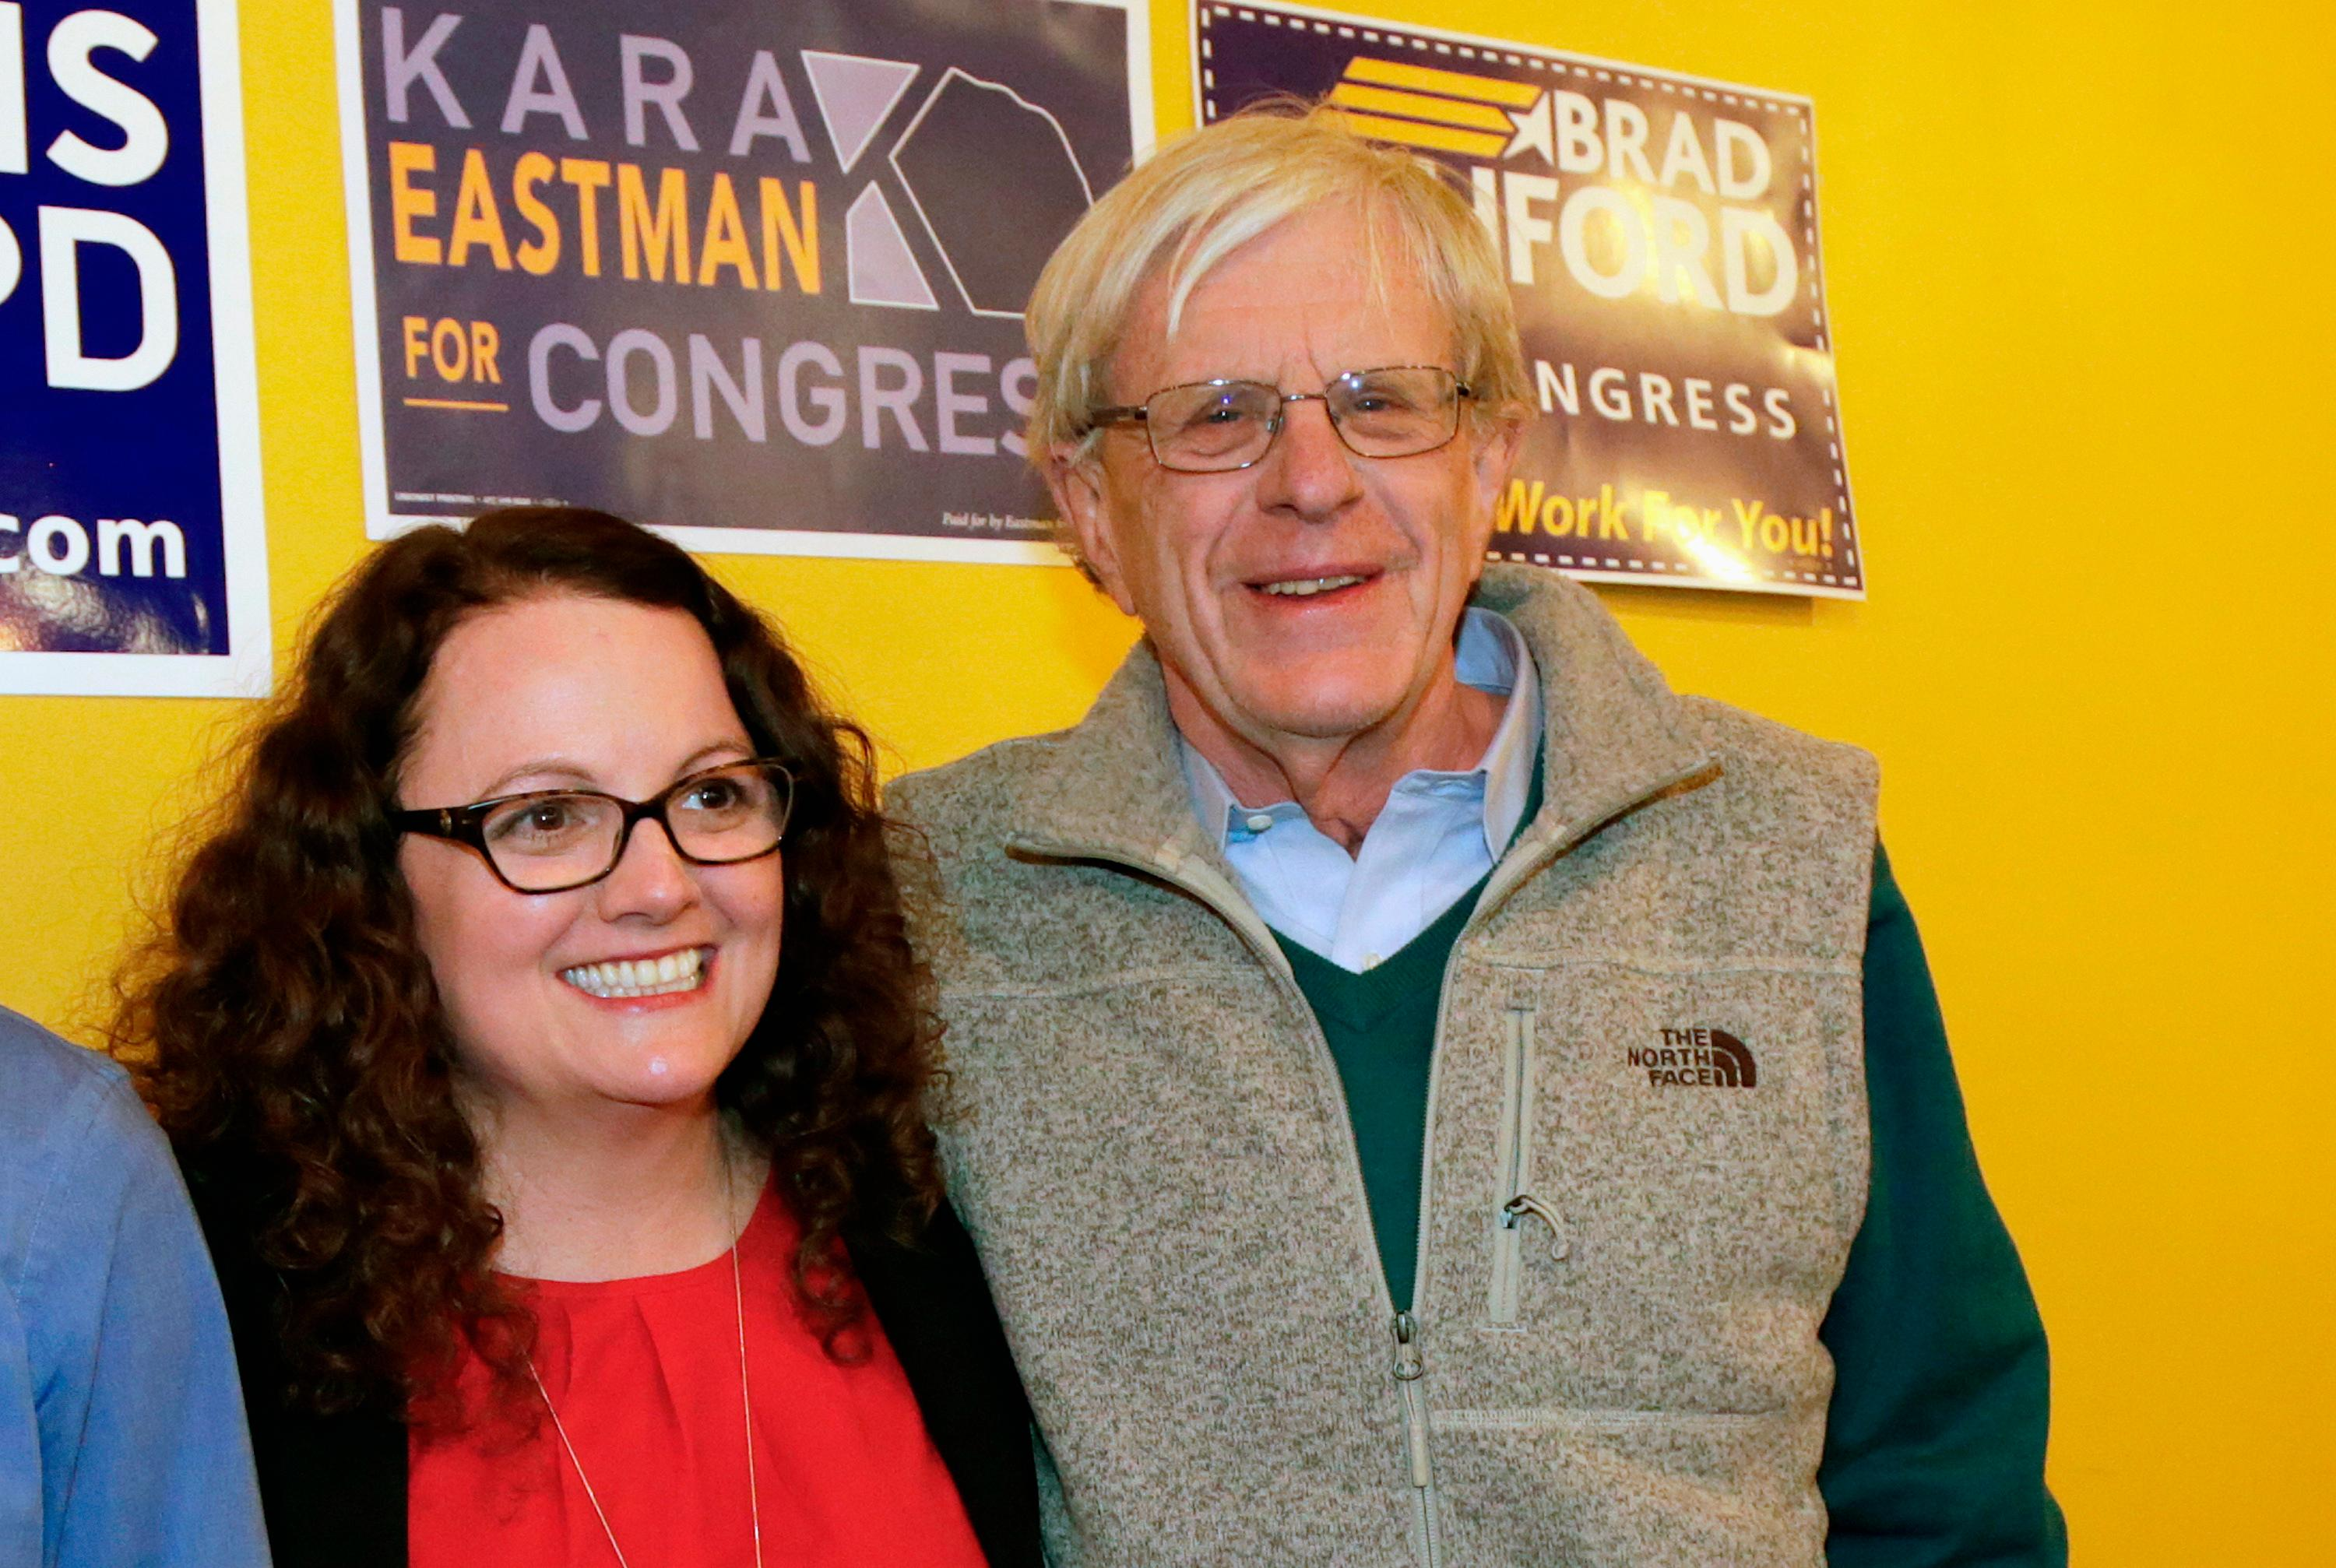 FILE - In this April 5, 2018, photo, Kara Eastman and Brad Ashford, two Democrats vying to challenge 2nd District House incumbent Don Bacon, R-Neb., pose for a photo in Omaha, Neb. Democratic and independent voters will pick one as the party's nominee in the Tuesday, May 15, primary election. (AP Photo/Nati Harnik, File)